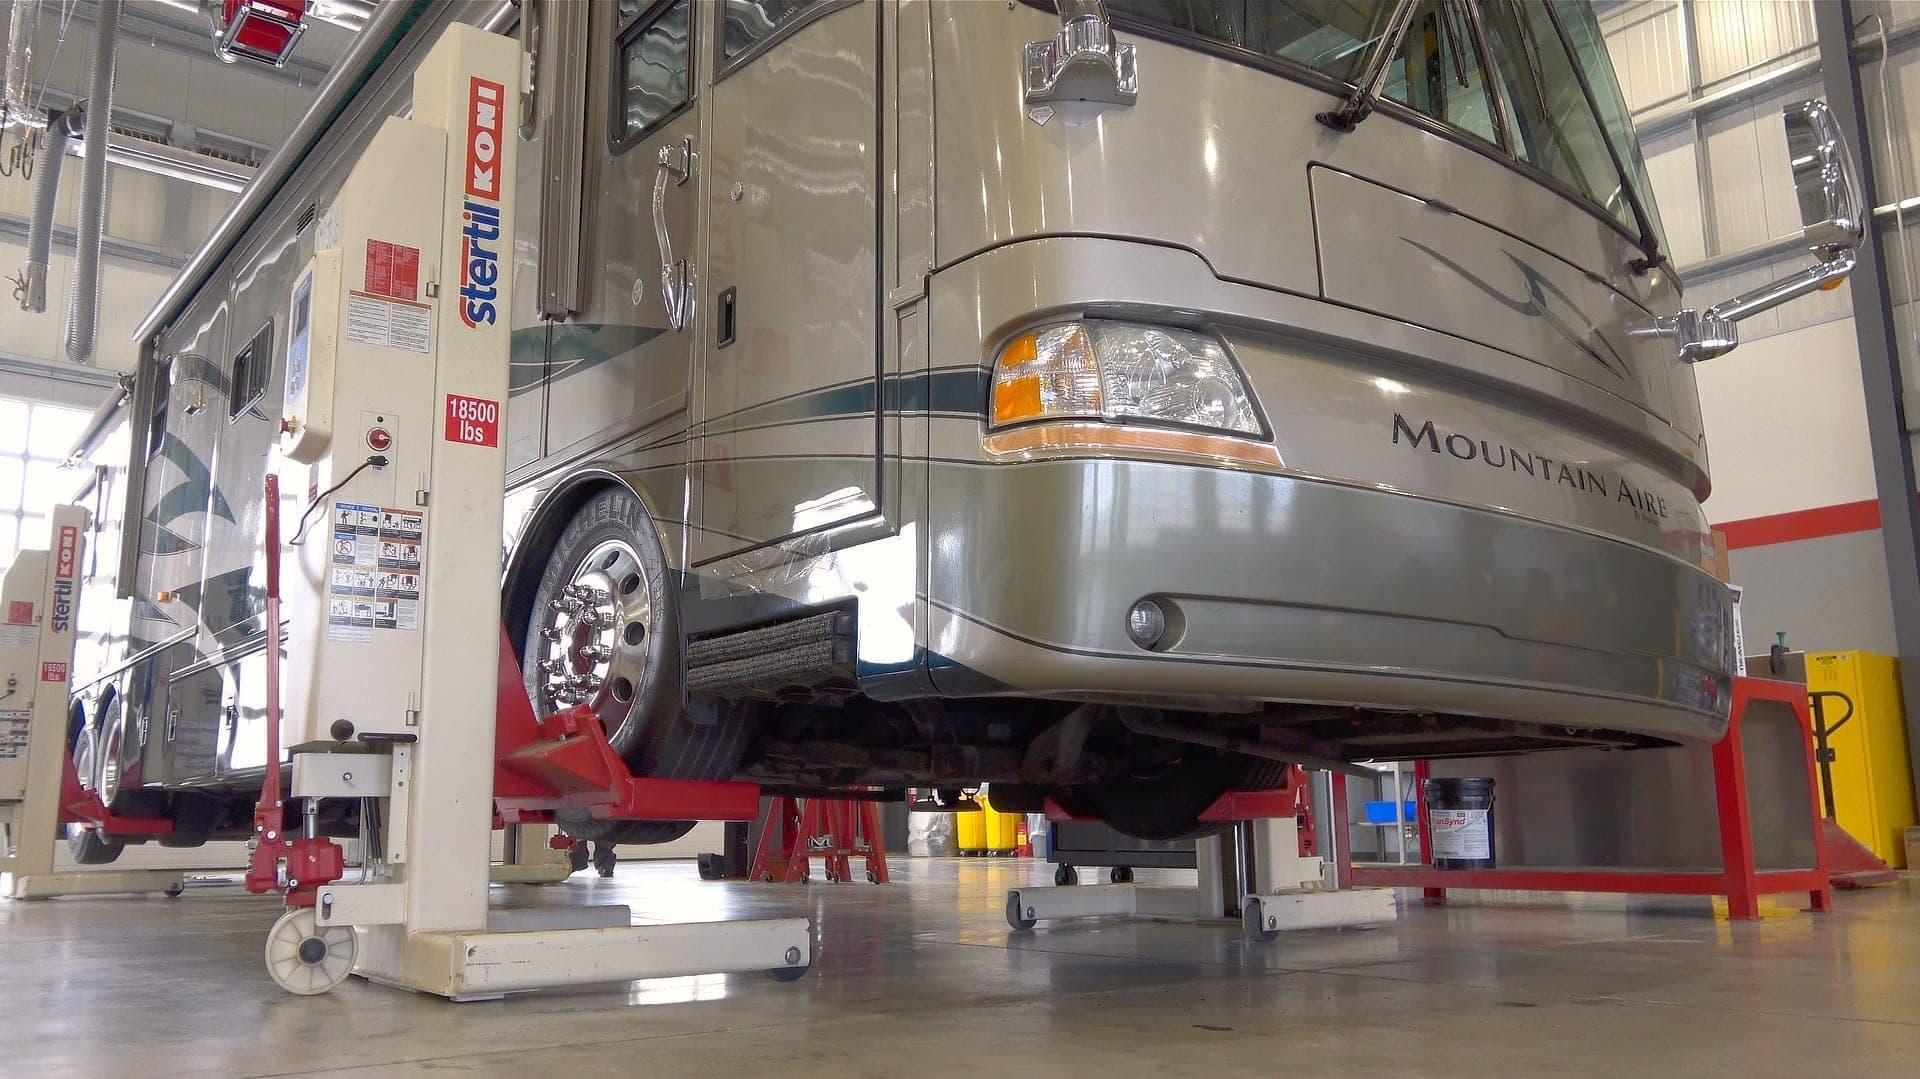 A motorhome on lifts while at an RV mechanic